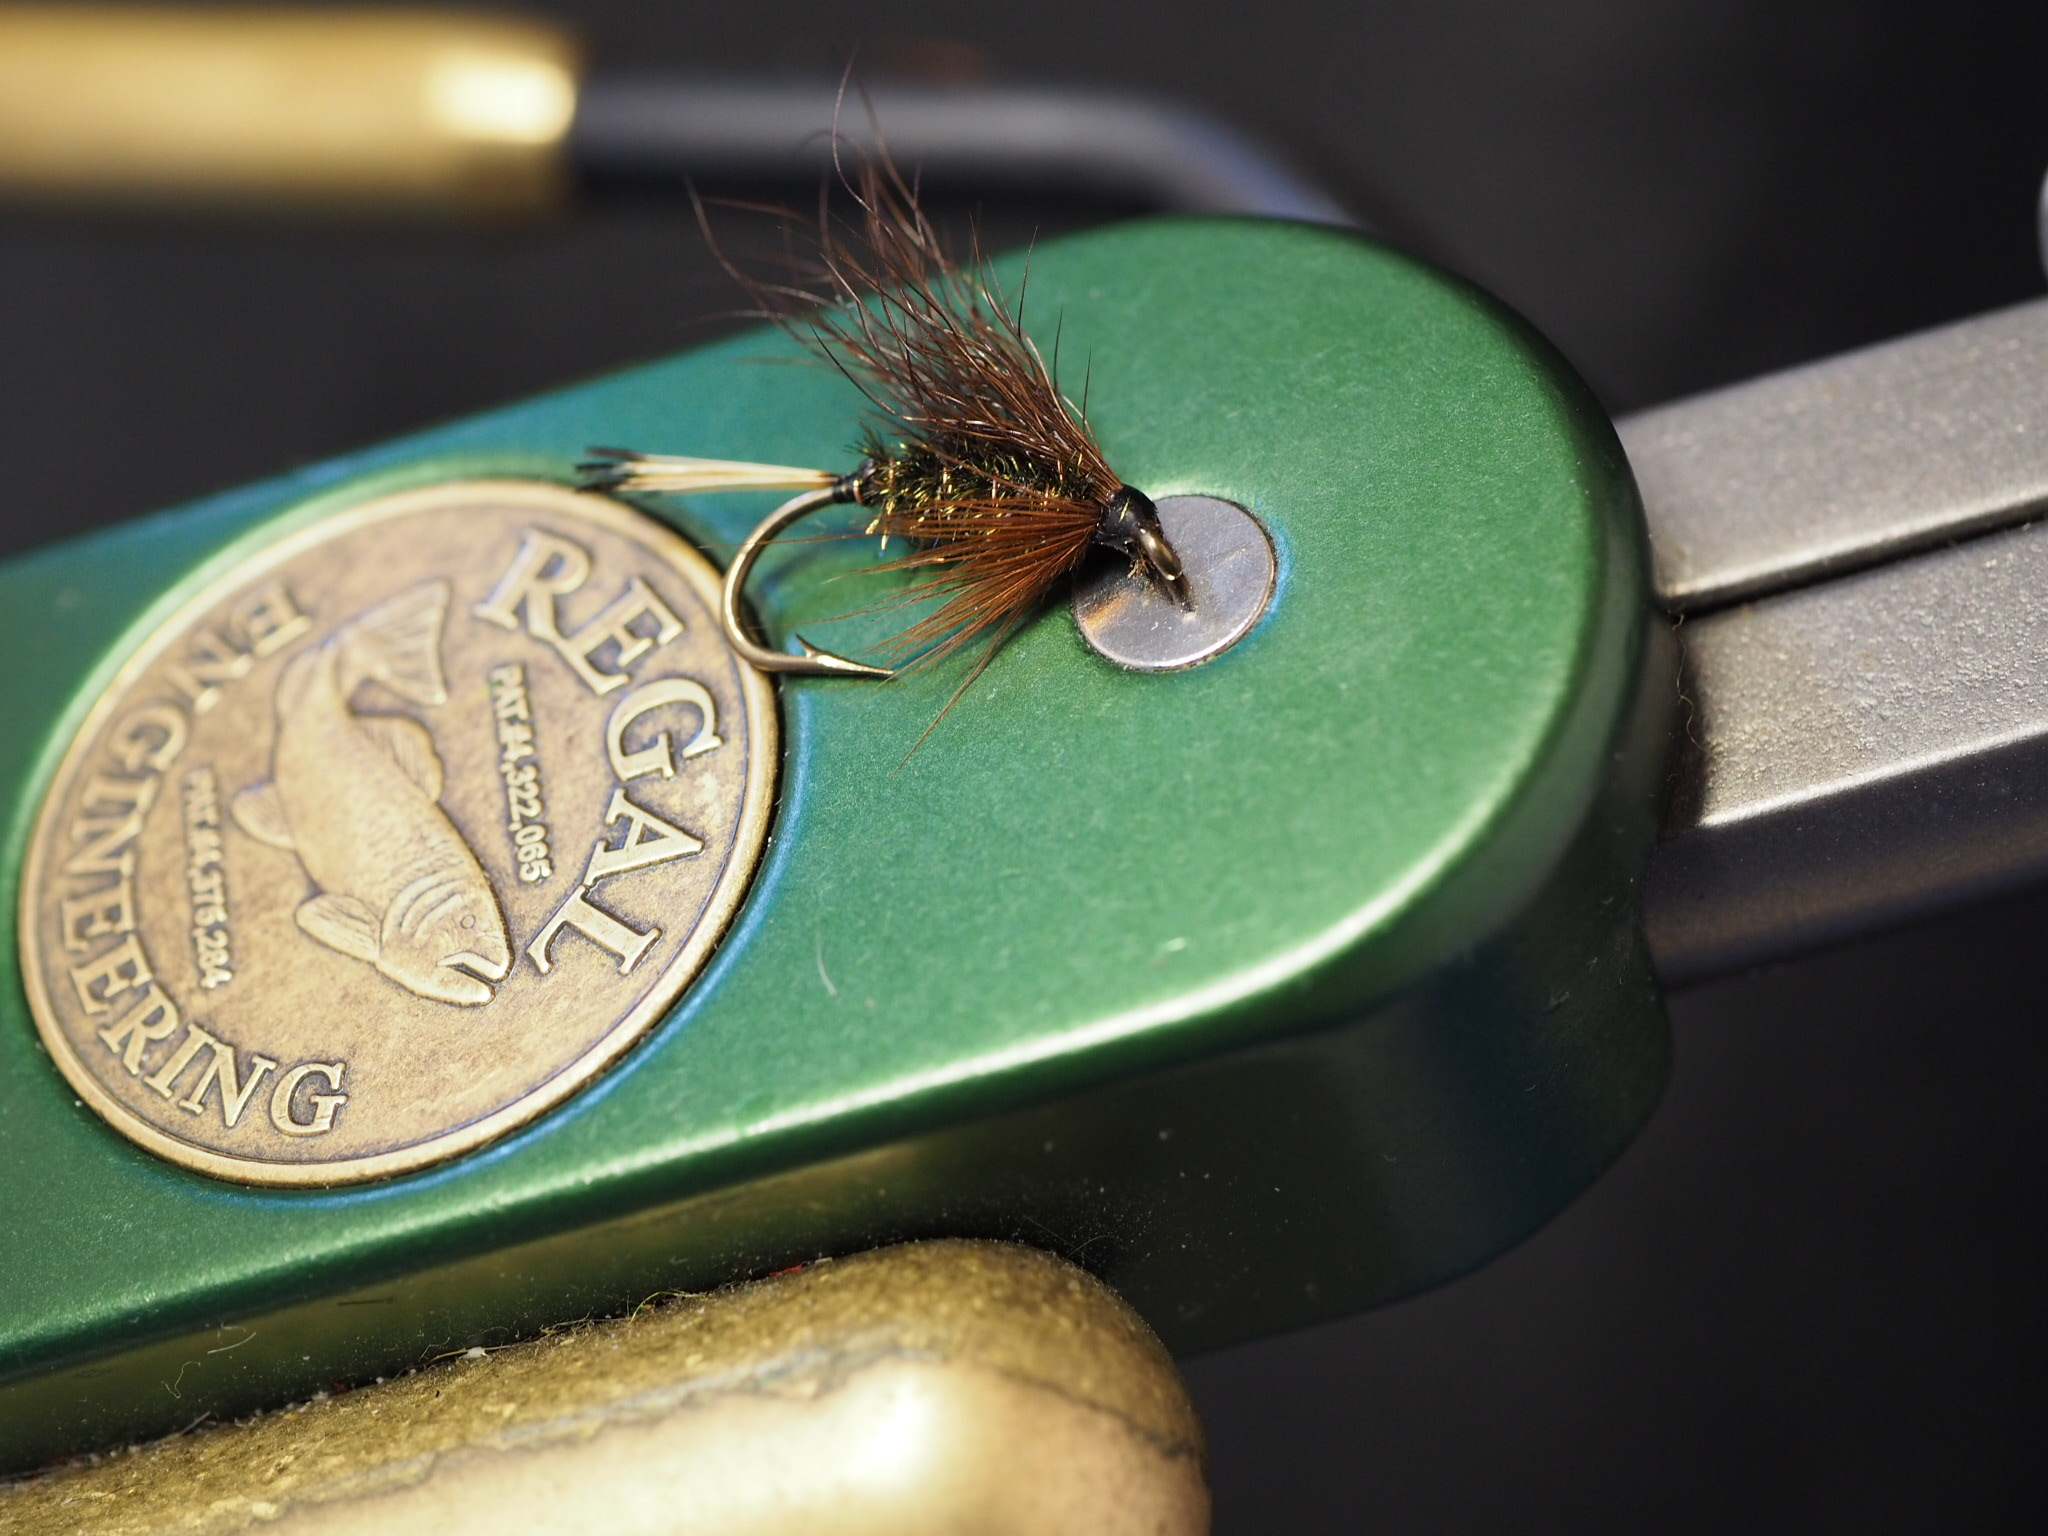 Brown wing, peacock herl body, golden pheasant tippet tail